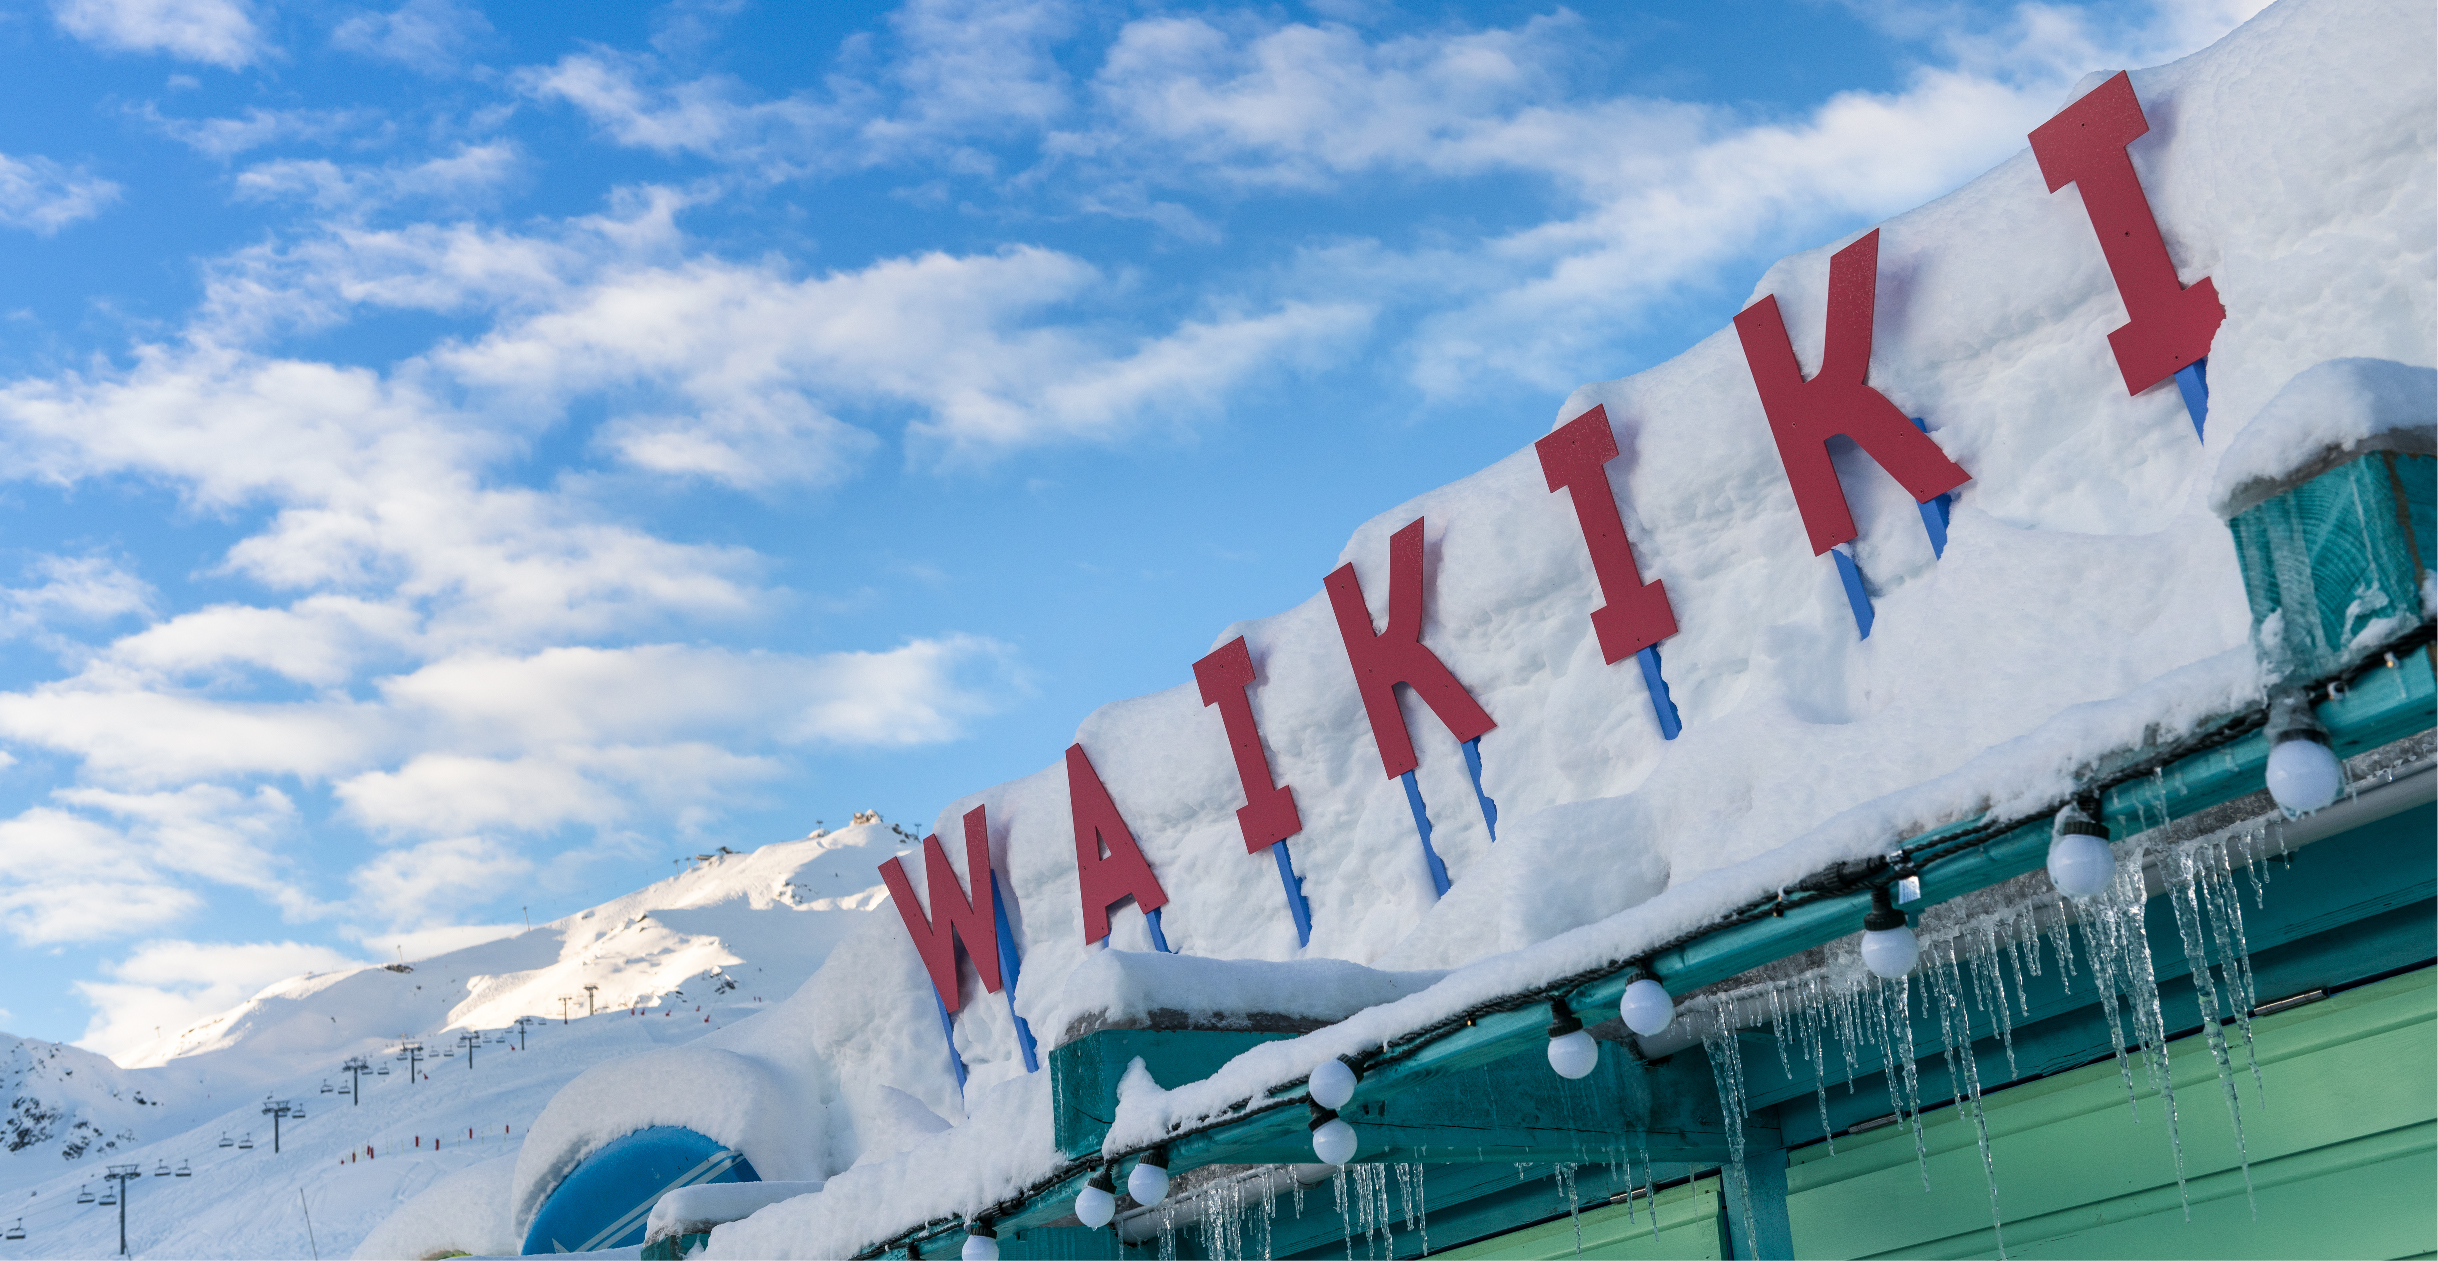 Waikiki Courchevel 1850 branding signage in the snow